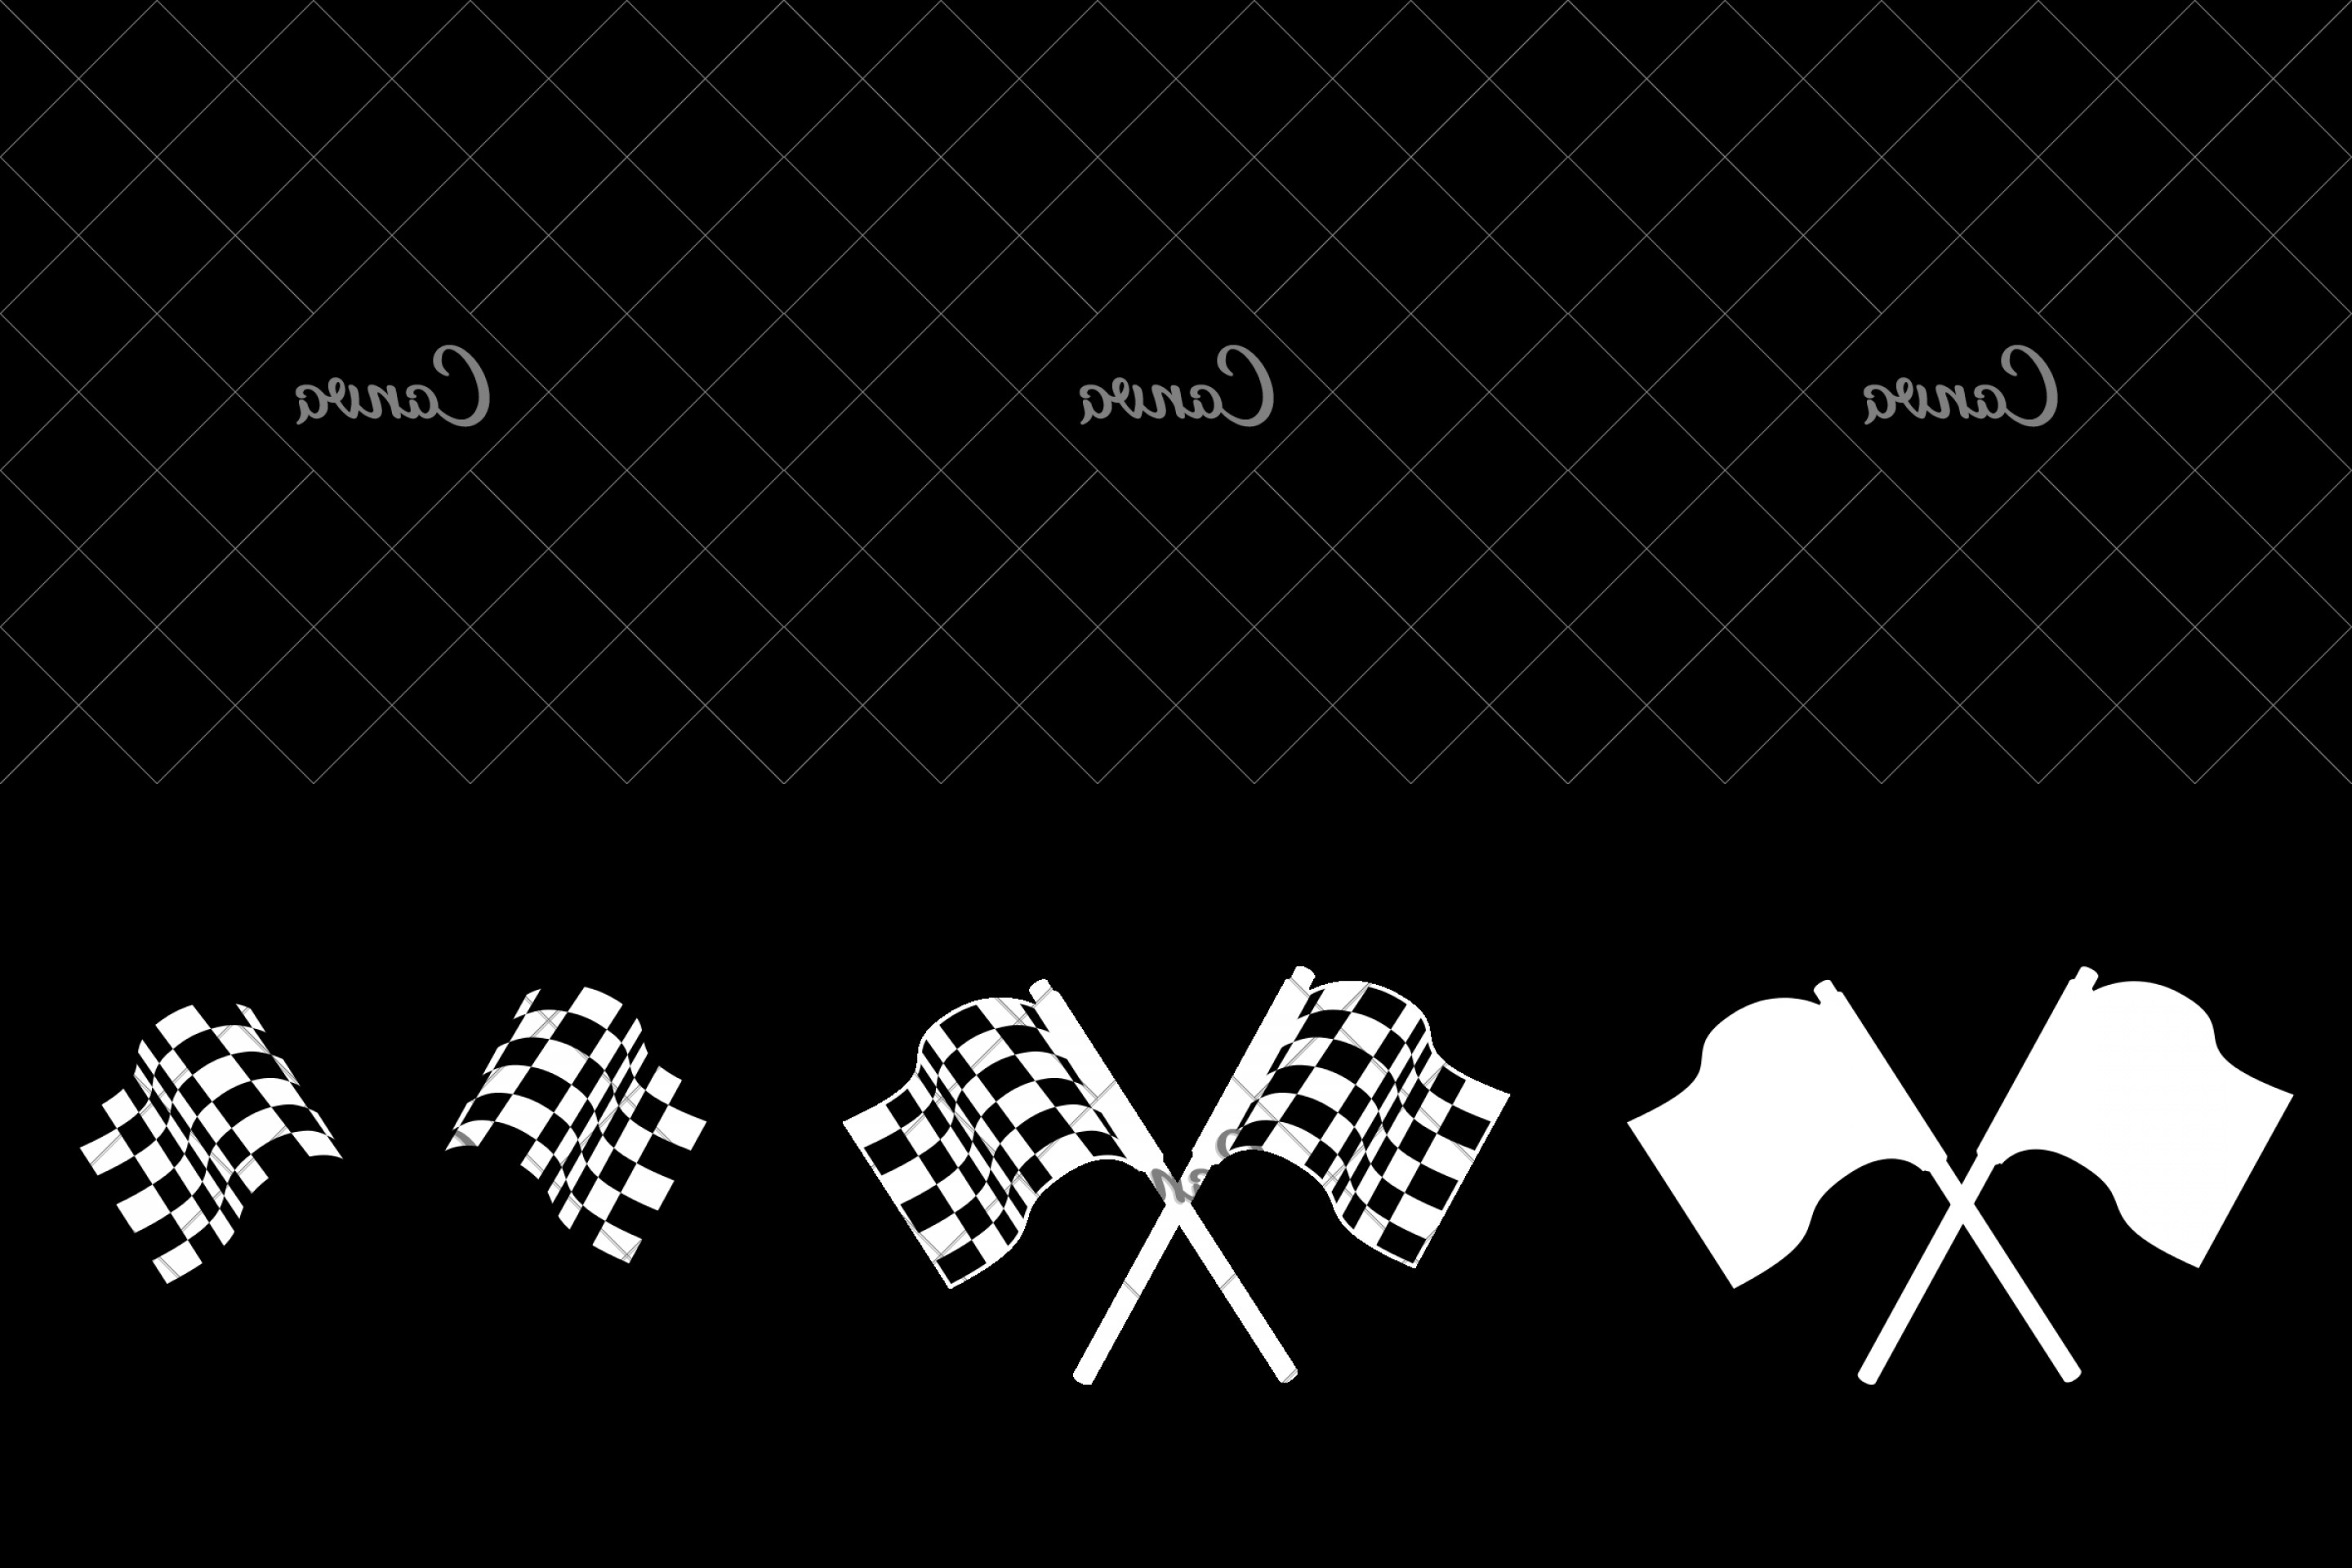 Black And White Vector Racing Graphics: Mabllafom Race Flag Formula Vector Graphic Icon